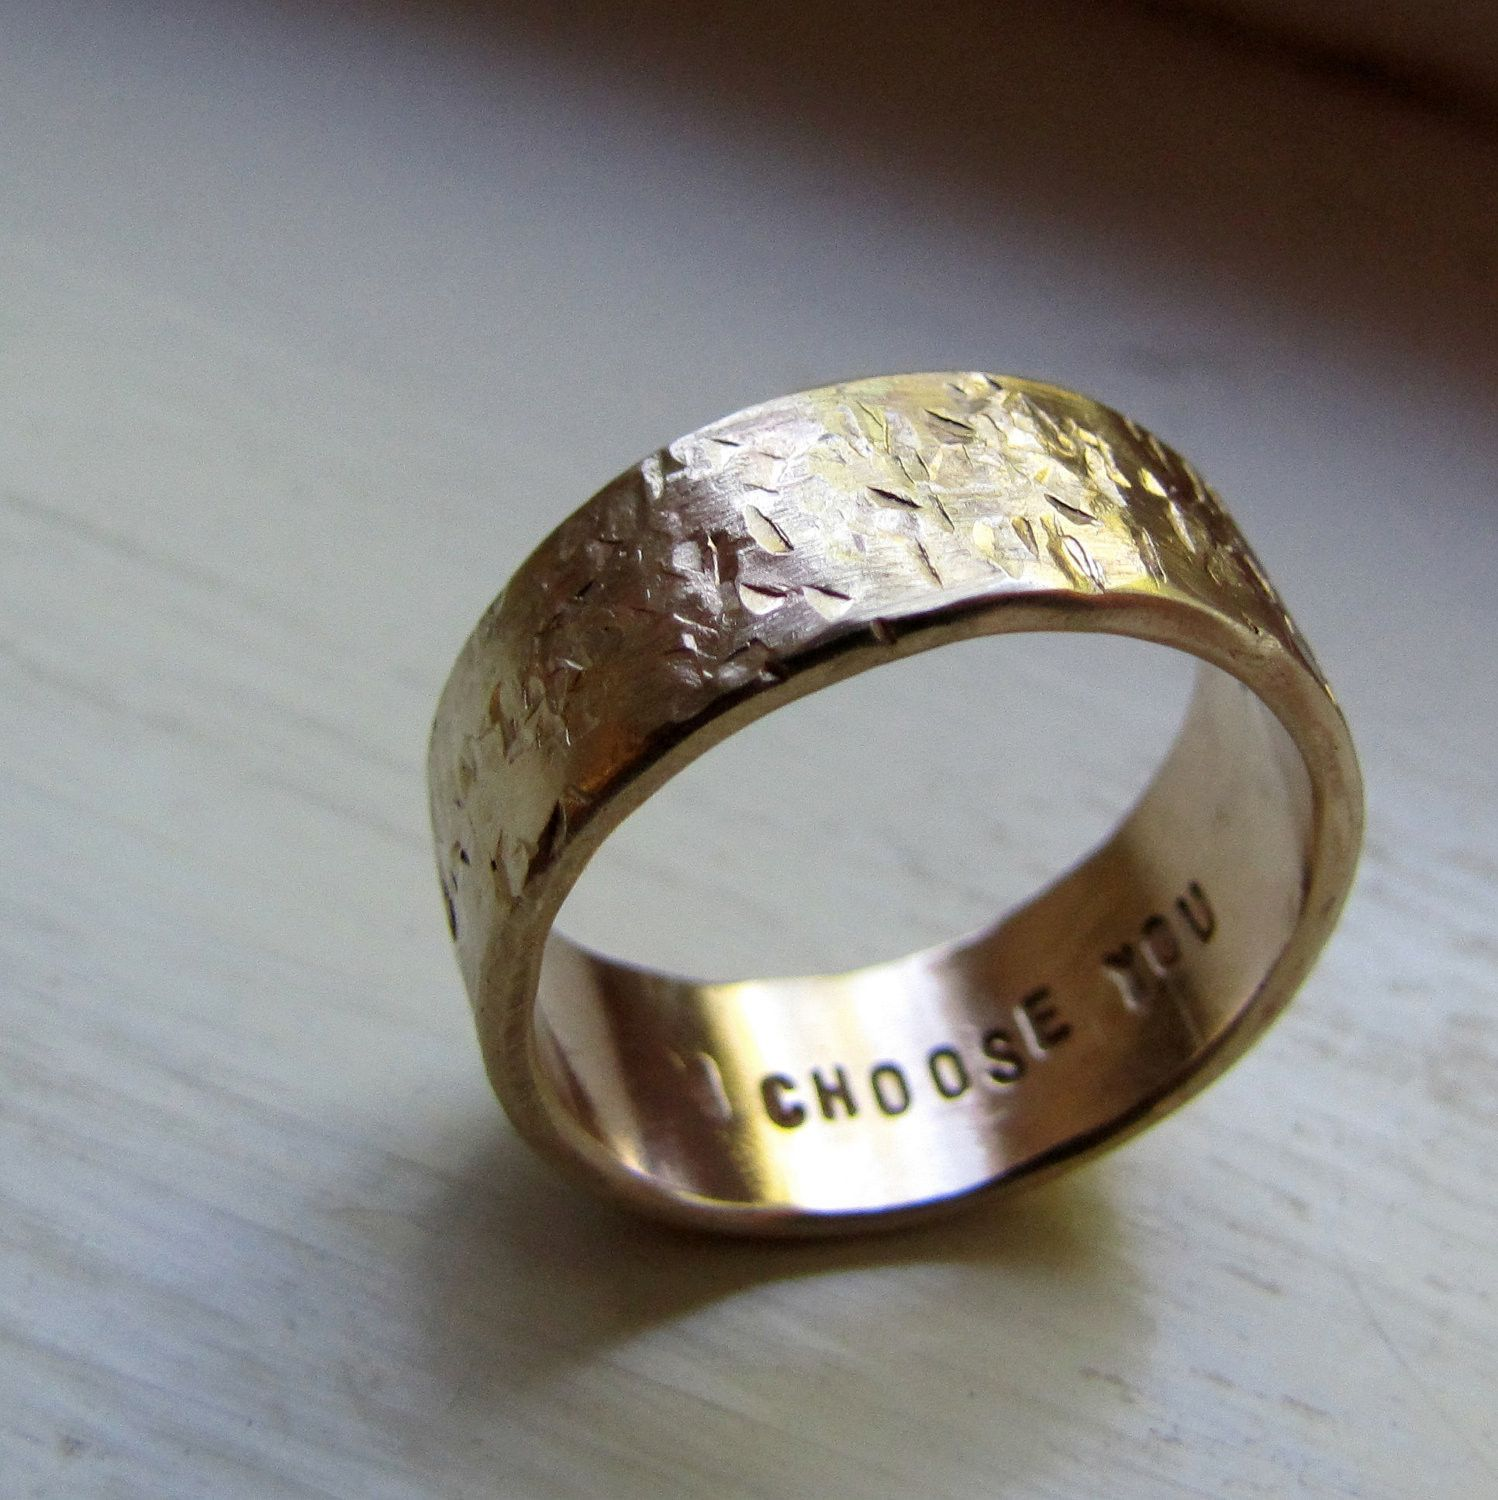 Mens Wedding Band 14k Gold Unique Rustic Distressed Ring